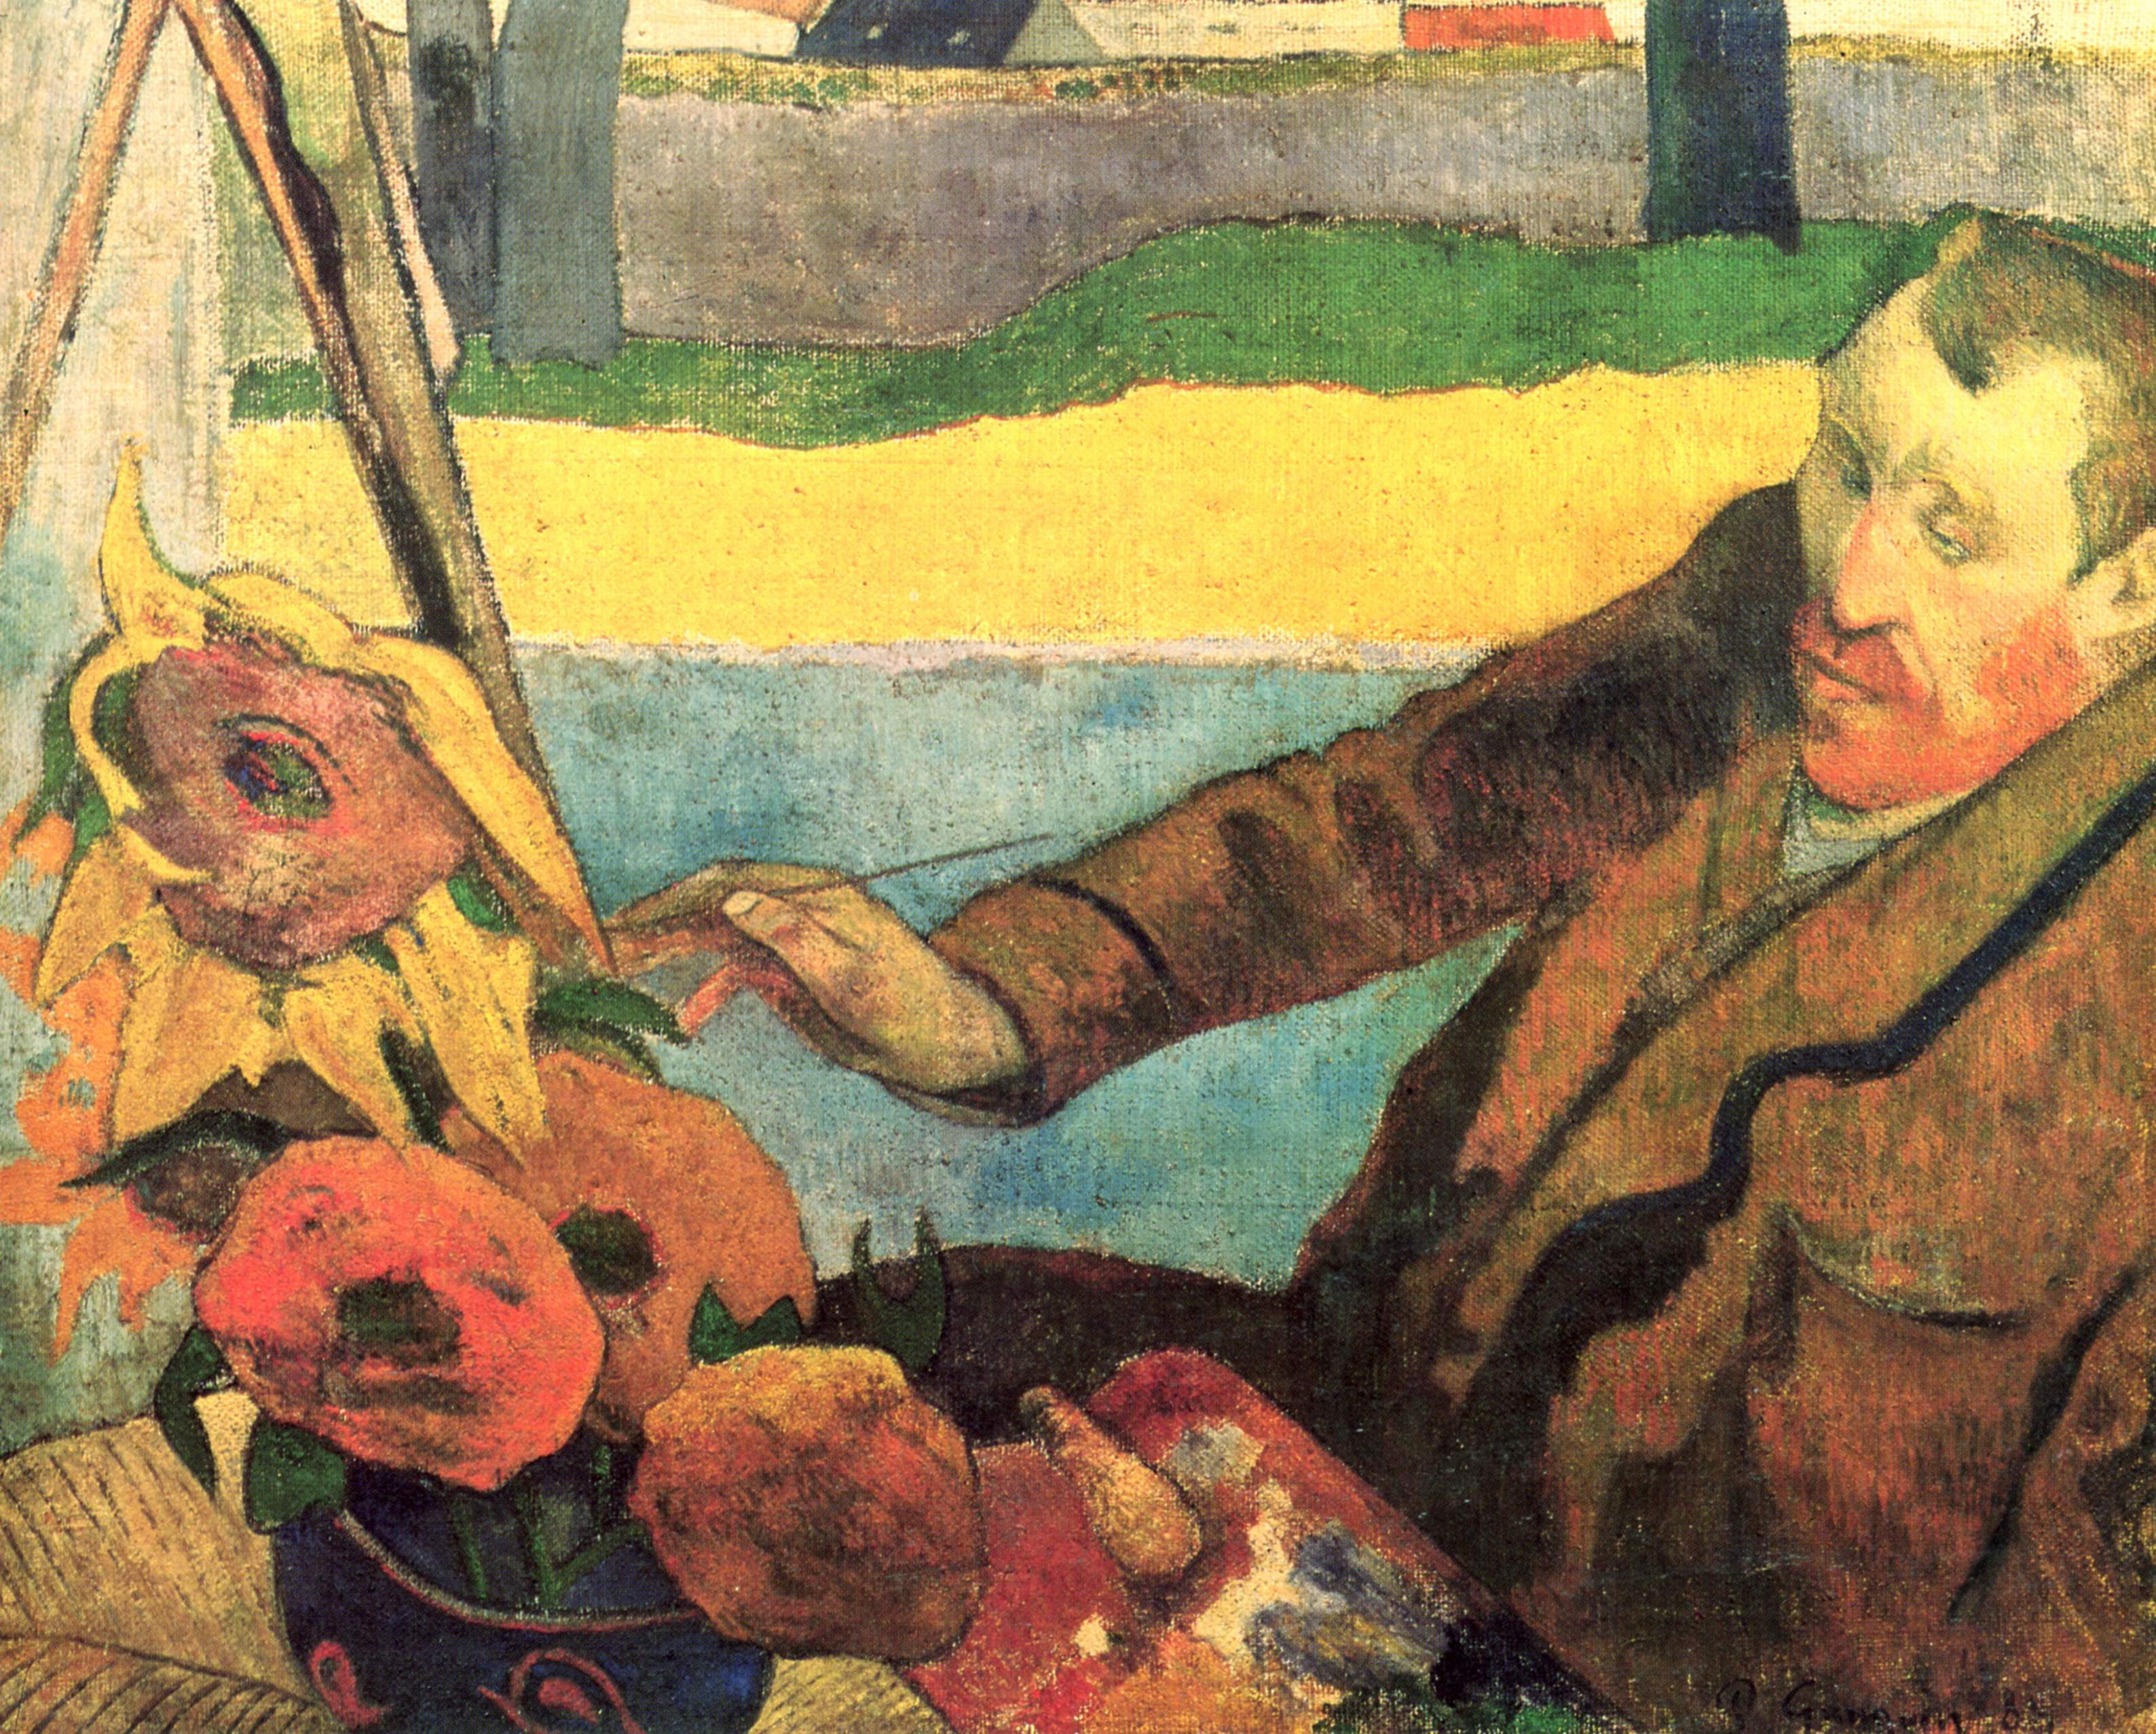 van gogh vase of sunflowers of his timeline vincent intended for december 23 1888 vincent cuts off part of his ear with a razor and is admitted to the arles hospital